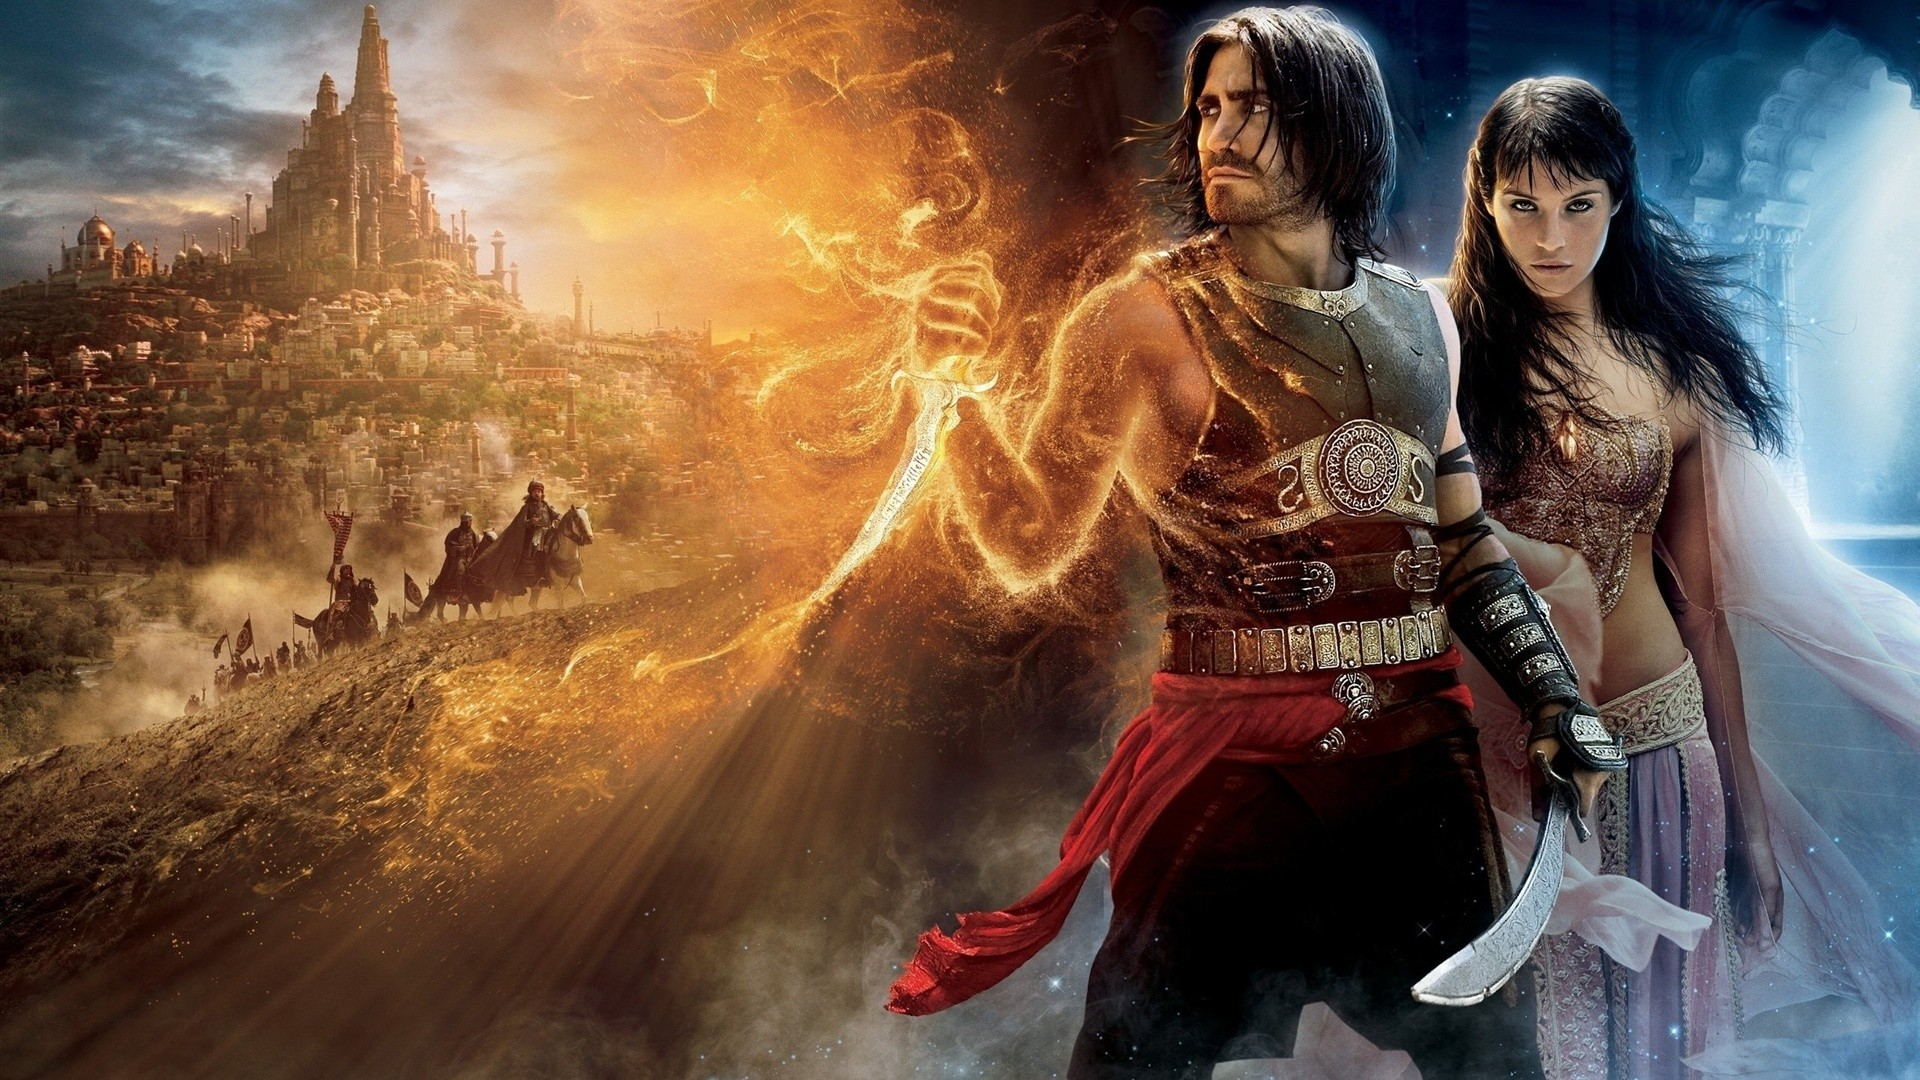 prince of persia hd wallpaper,action adventure game,cg artwork,games,mythology,strategy video game